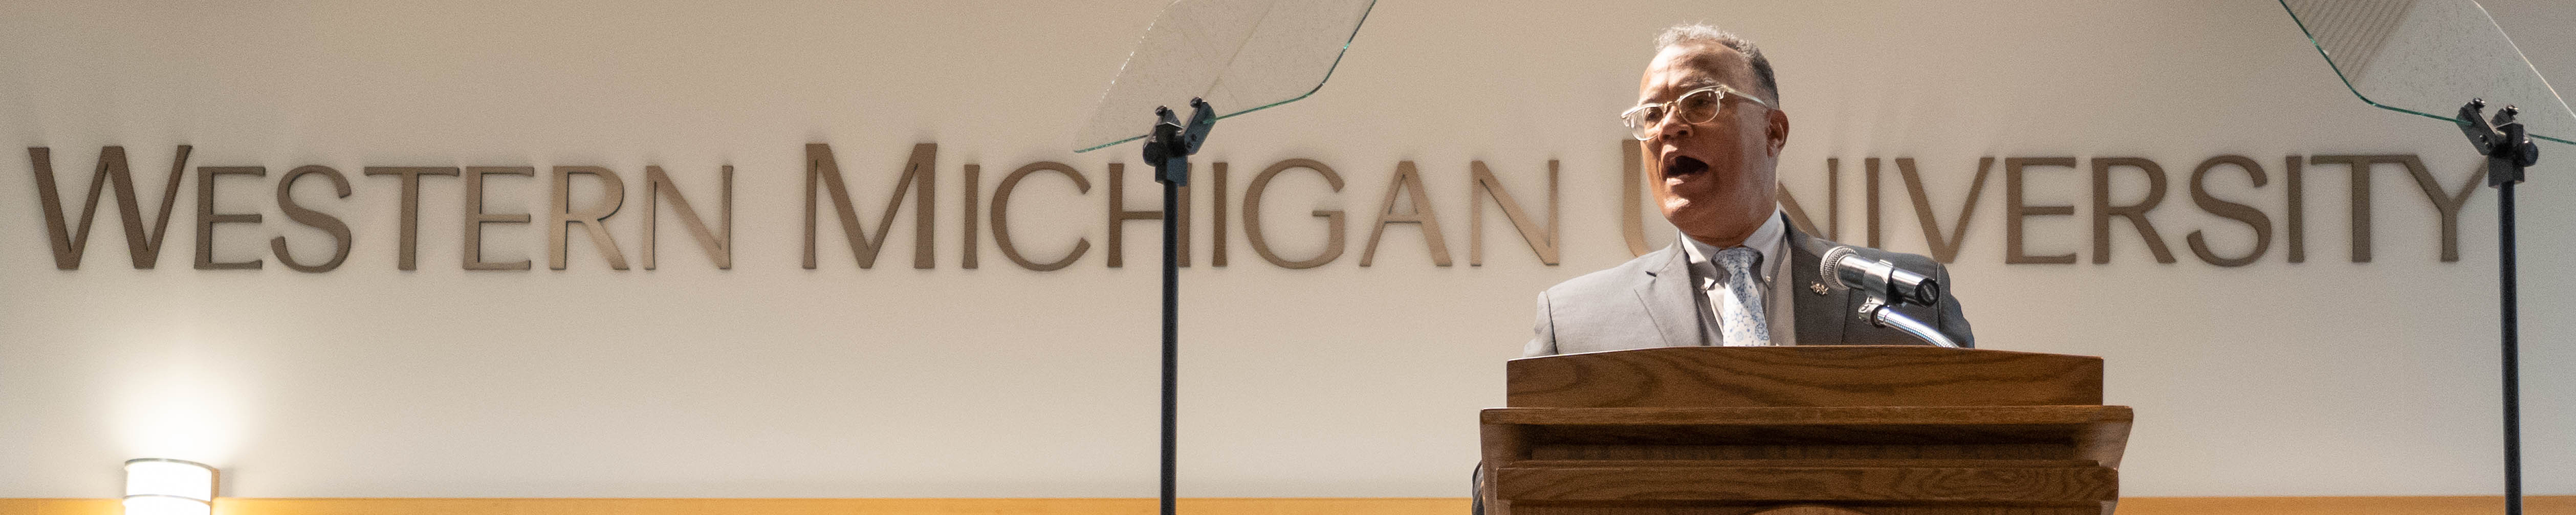 Page banner image: WMU President Montgomery speaking at the awards ceremony